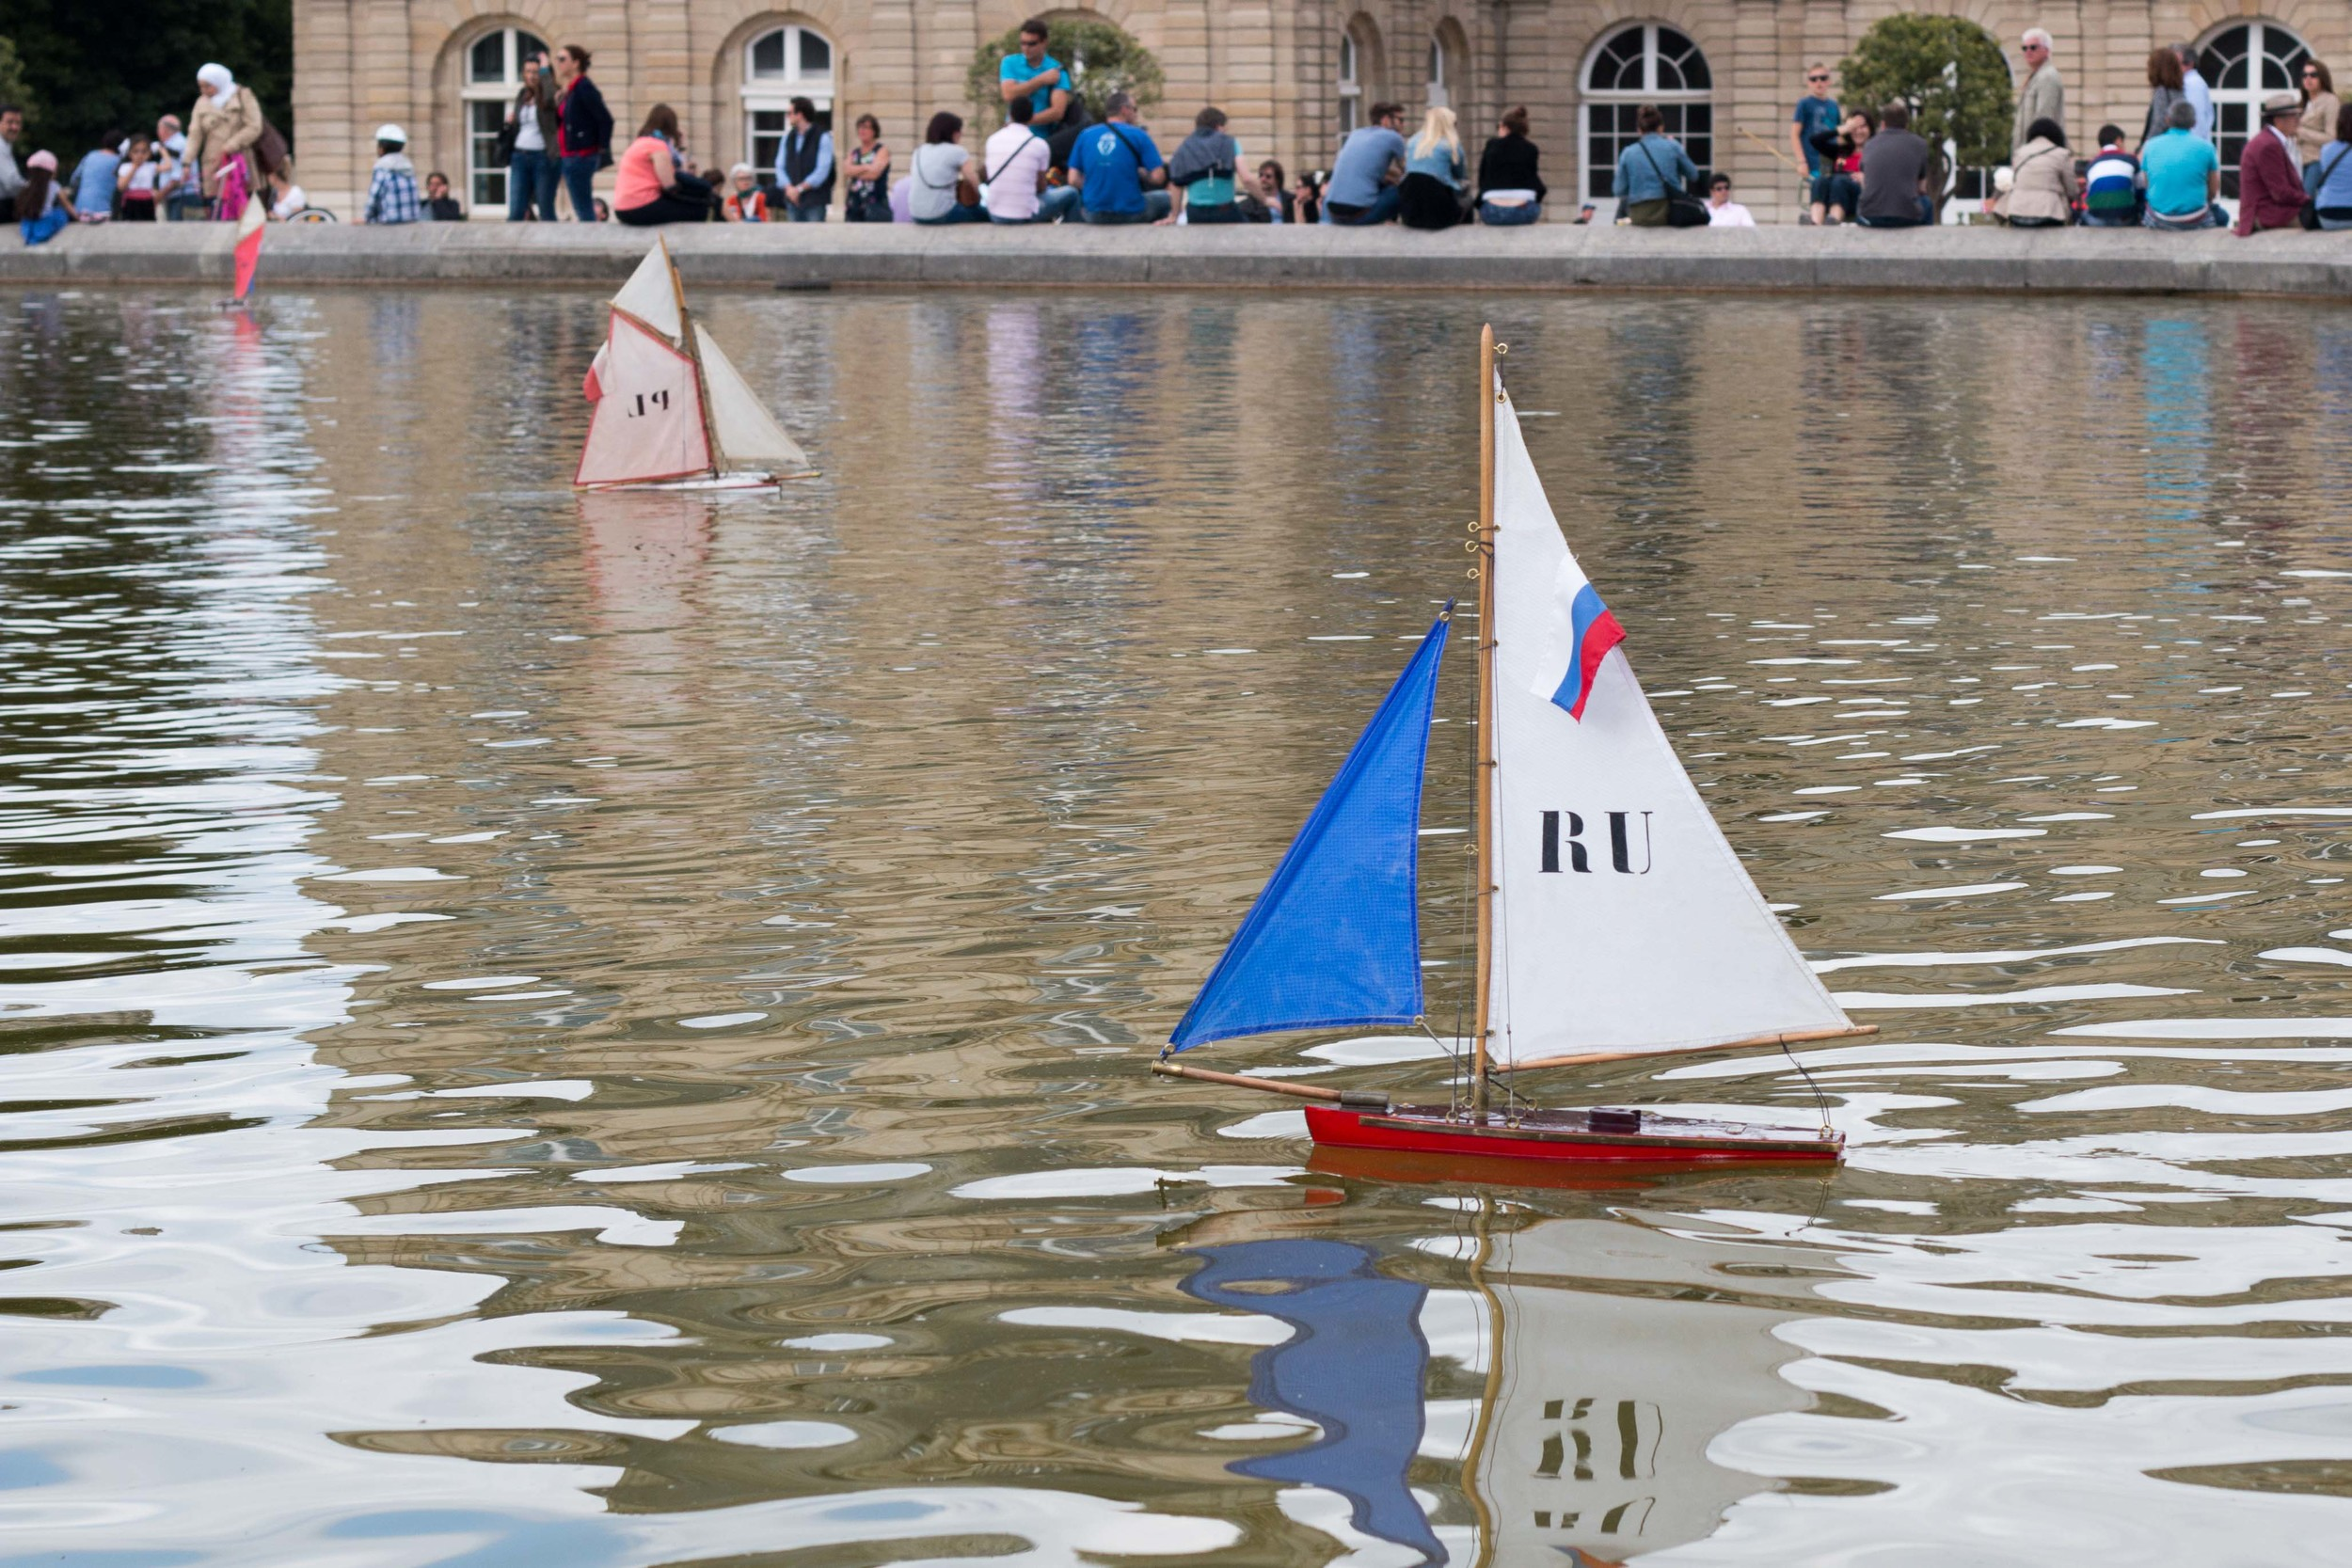 Sailboats in the fountain at Luxembourg gardens